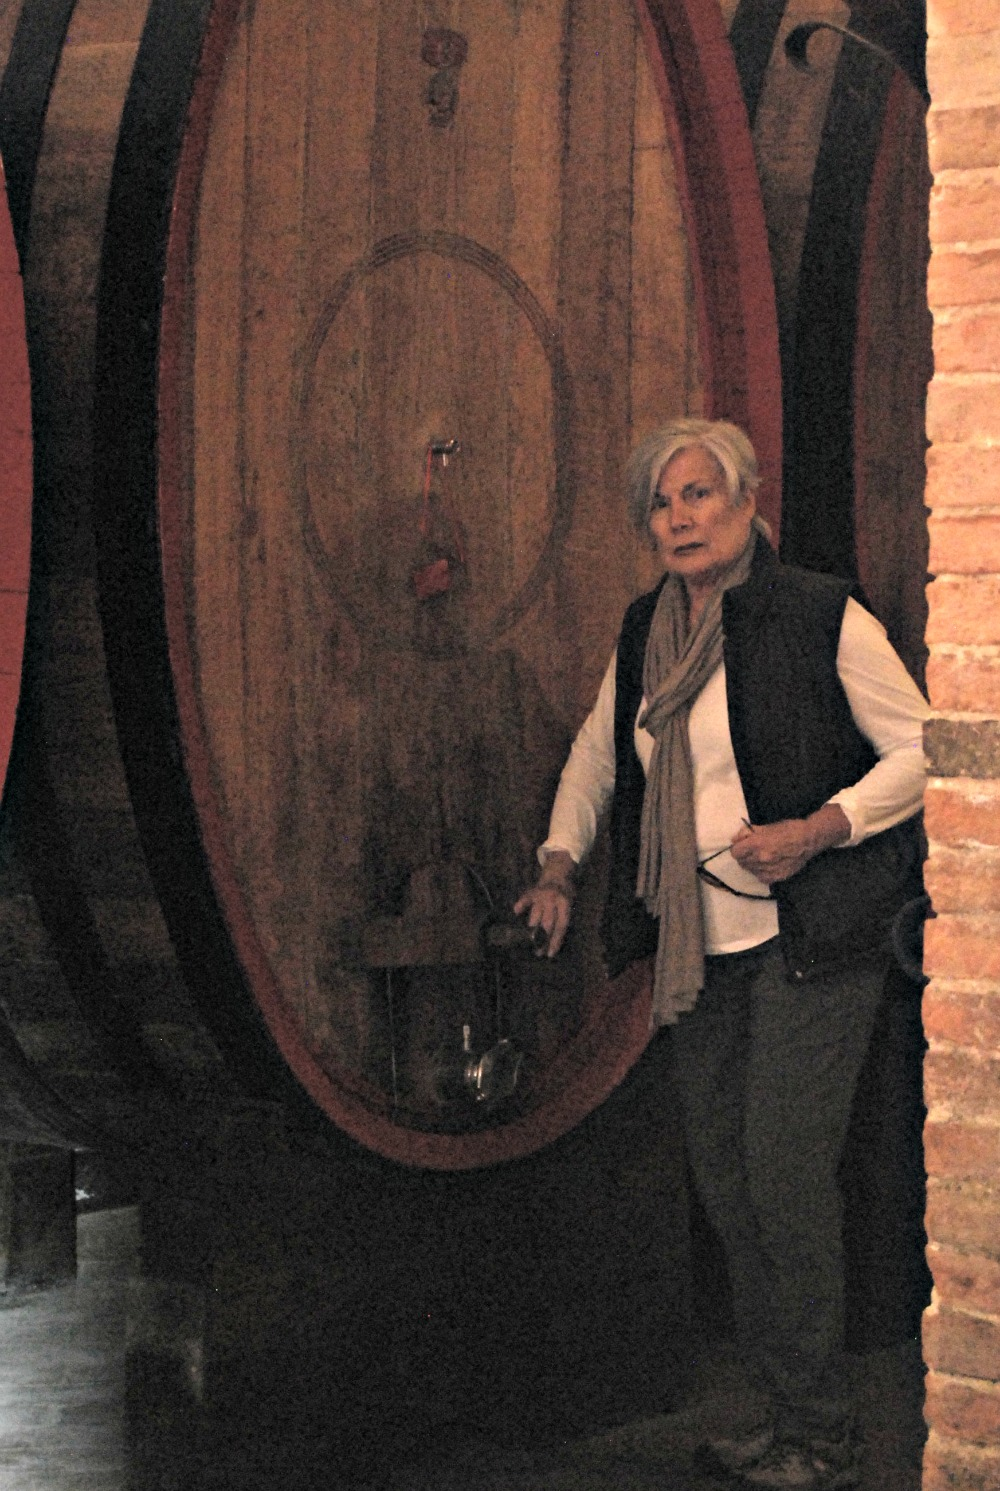 - No Charlotte, you can't open the wine barrel.